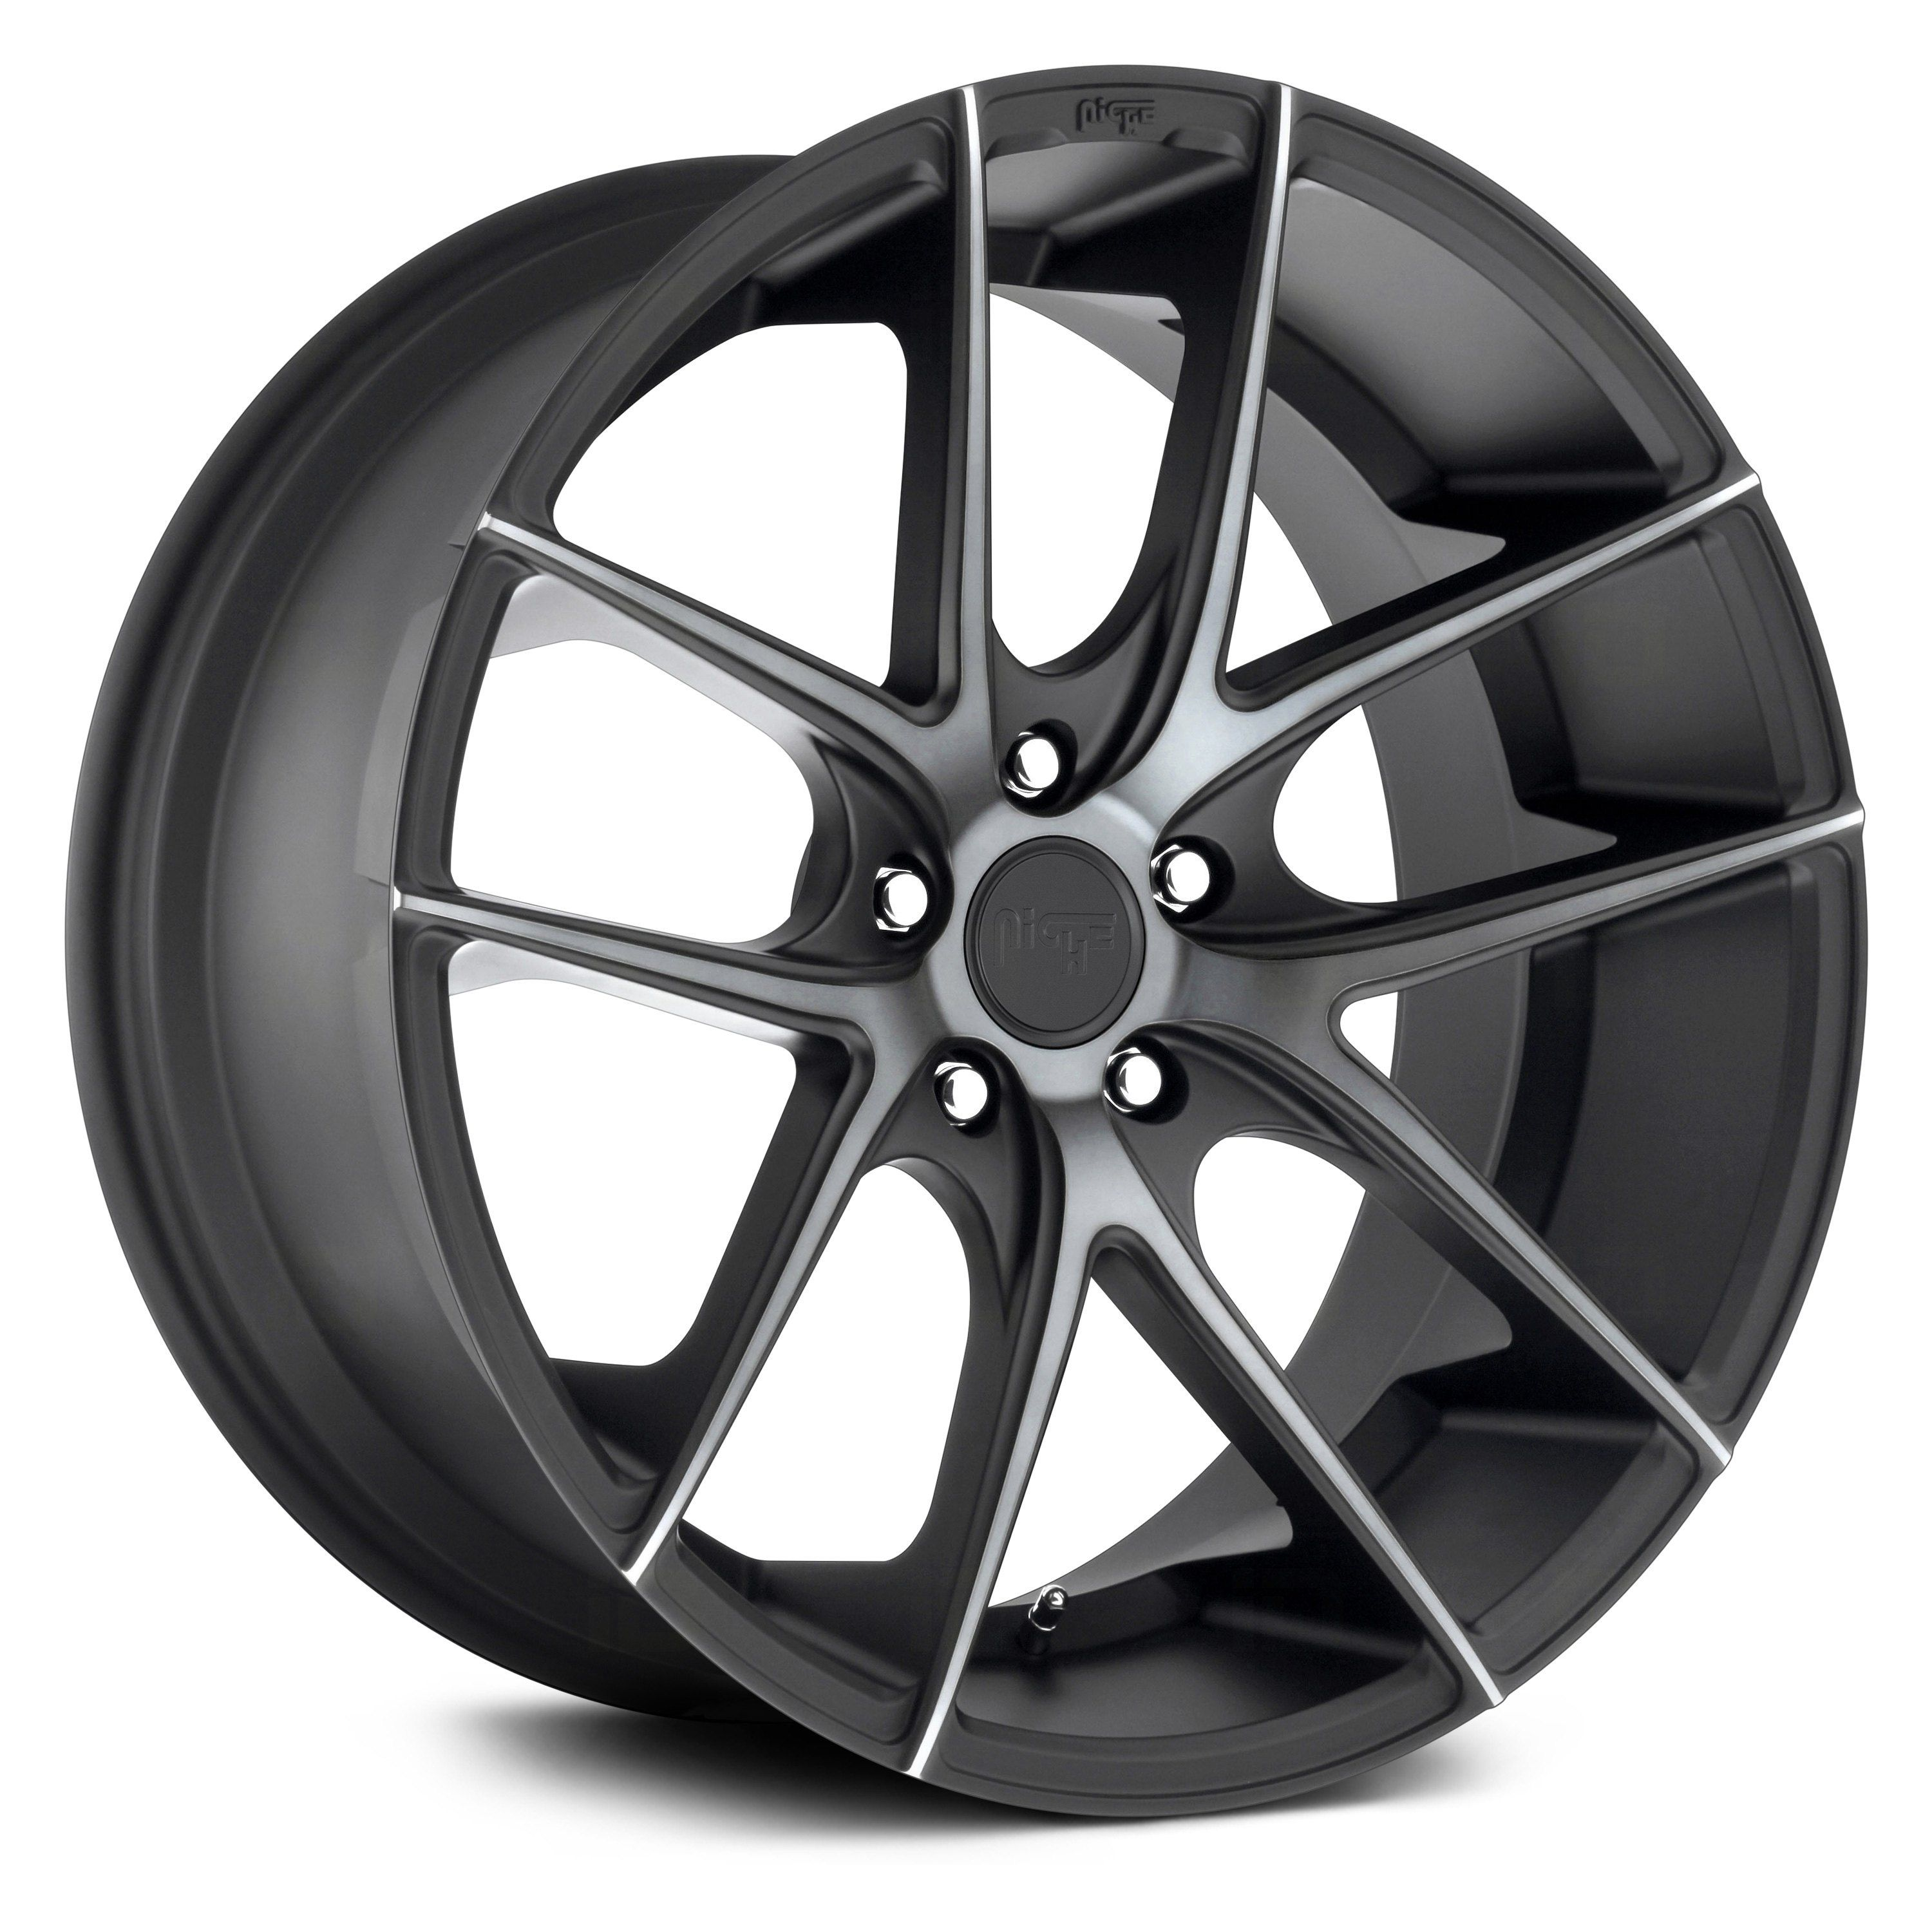 M130 TARGA Black With Machined Face And Double Dark Tint